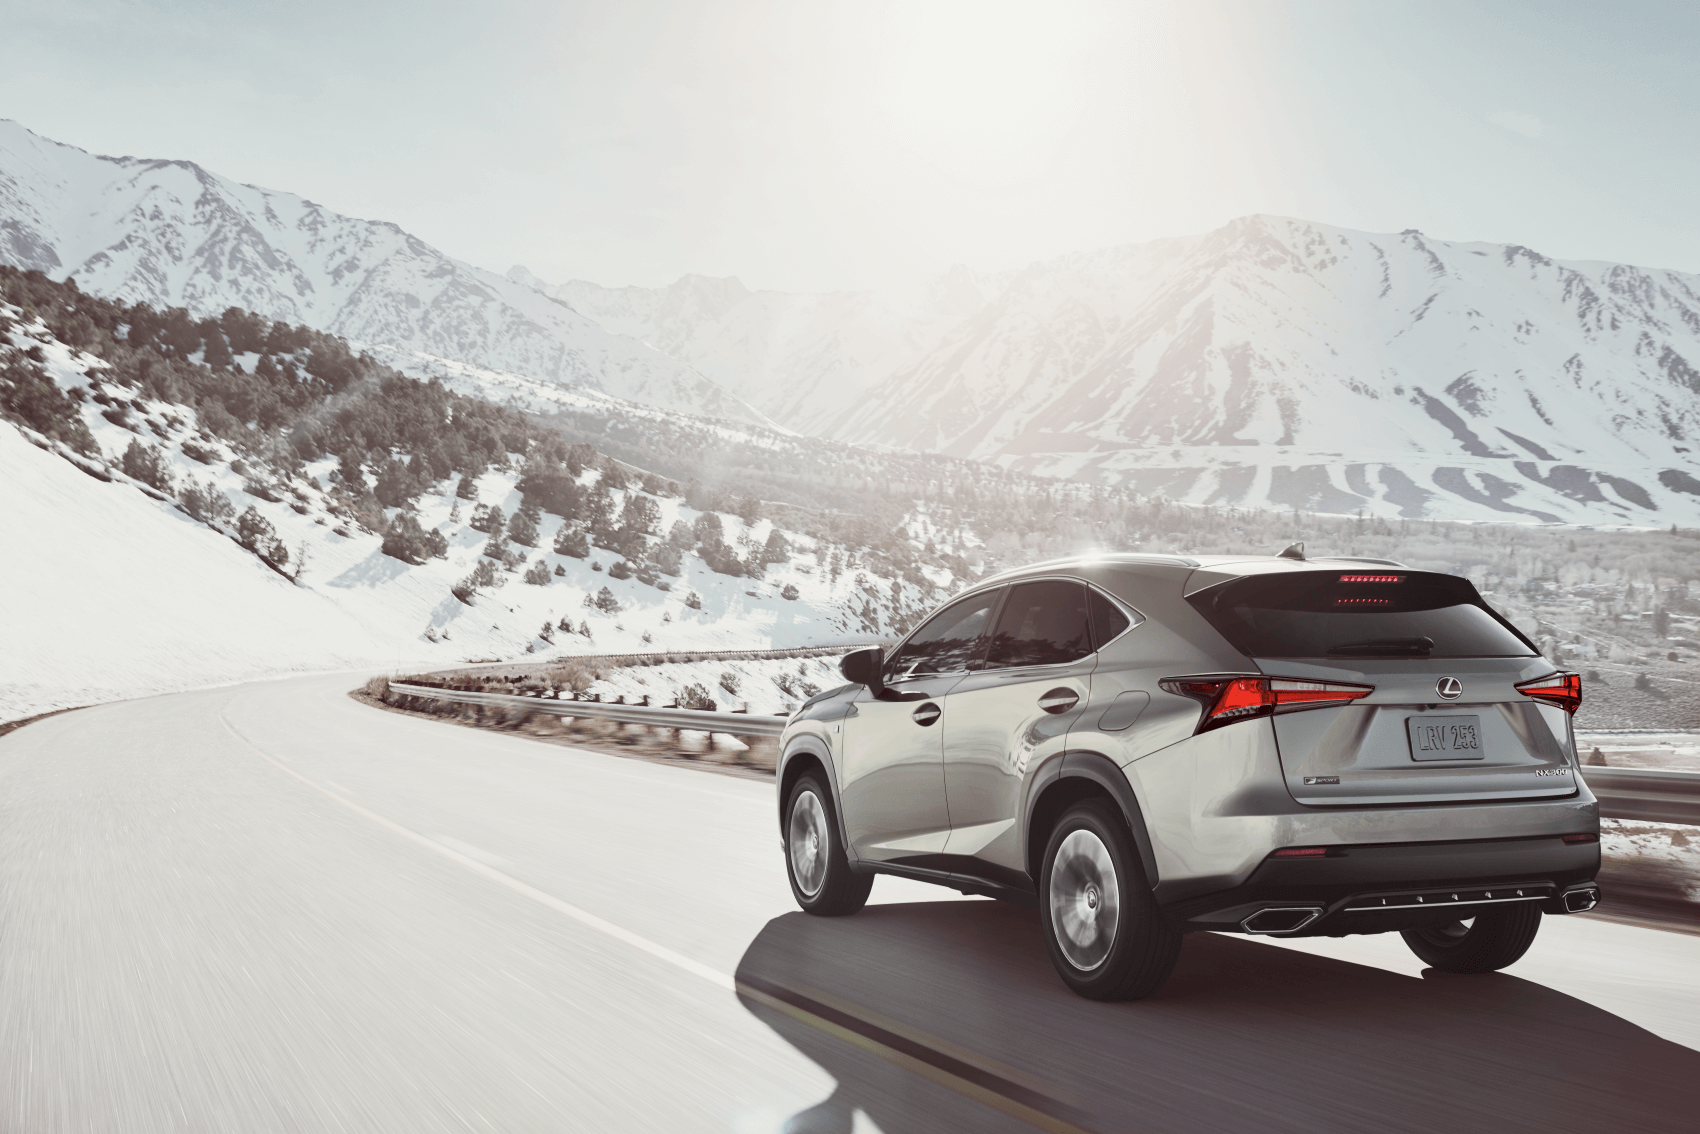 Used Lexus NX Silver Snow Mountain